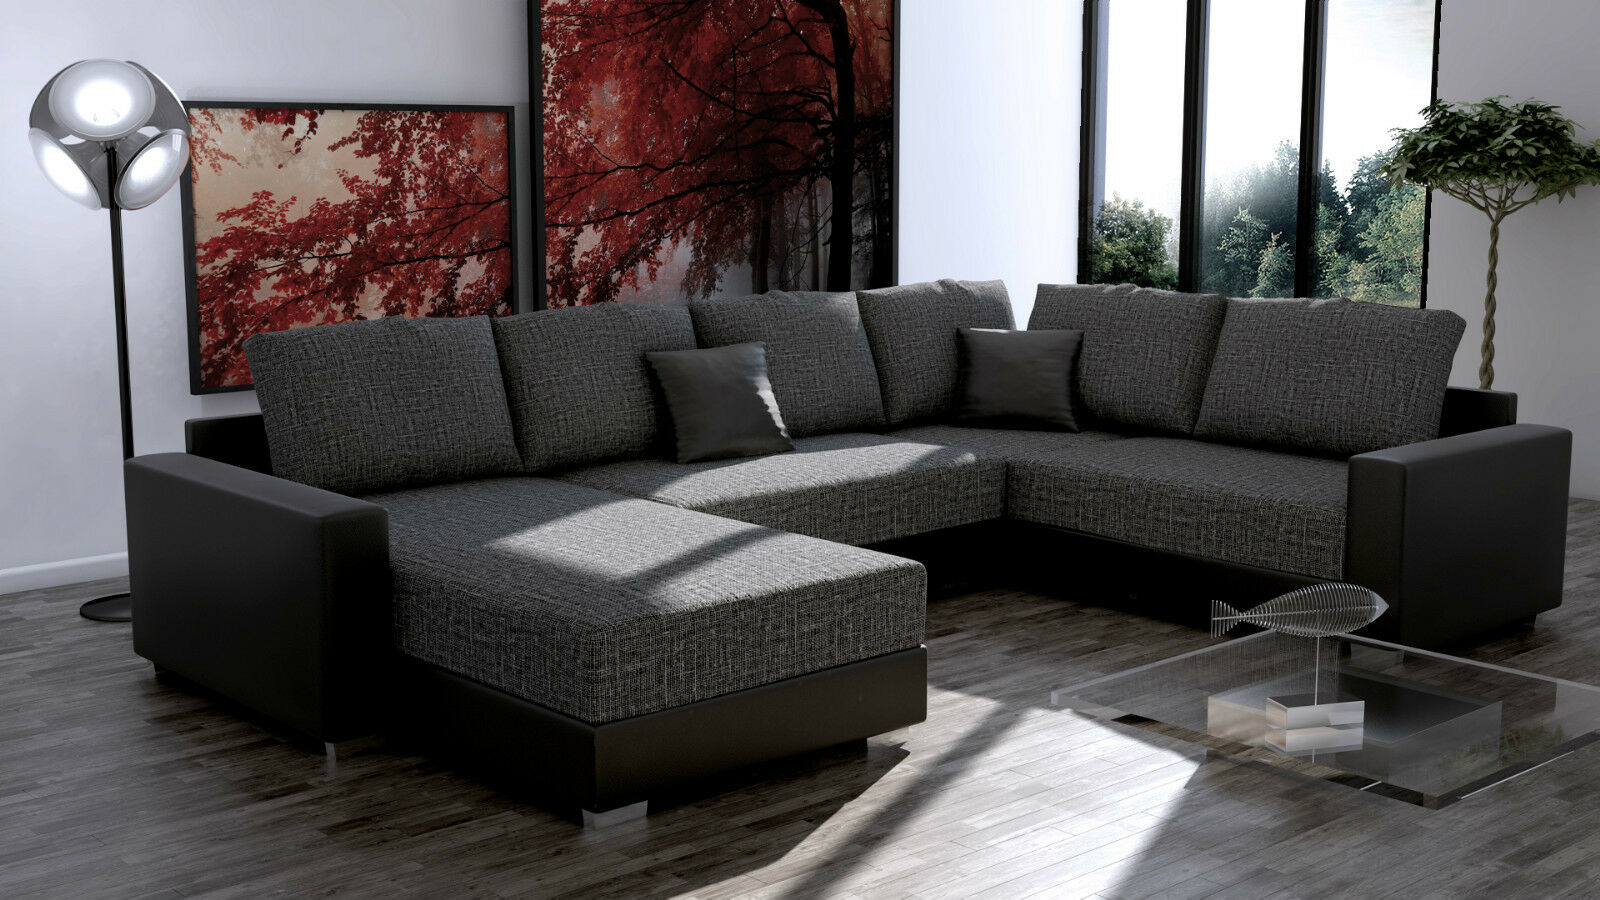 Couch garnitur ecksofa sofagarnitur sofa sty 3 1 for Yatego wohnlandschaft